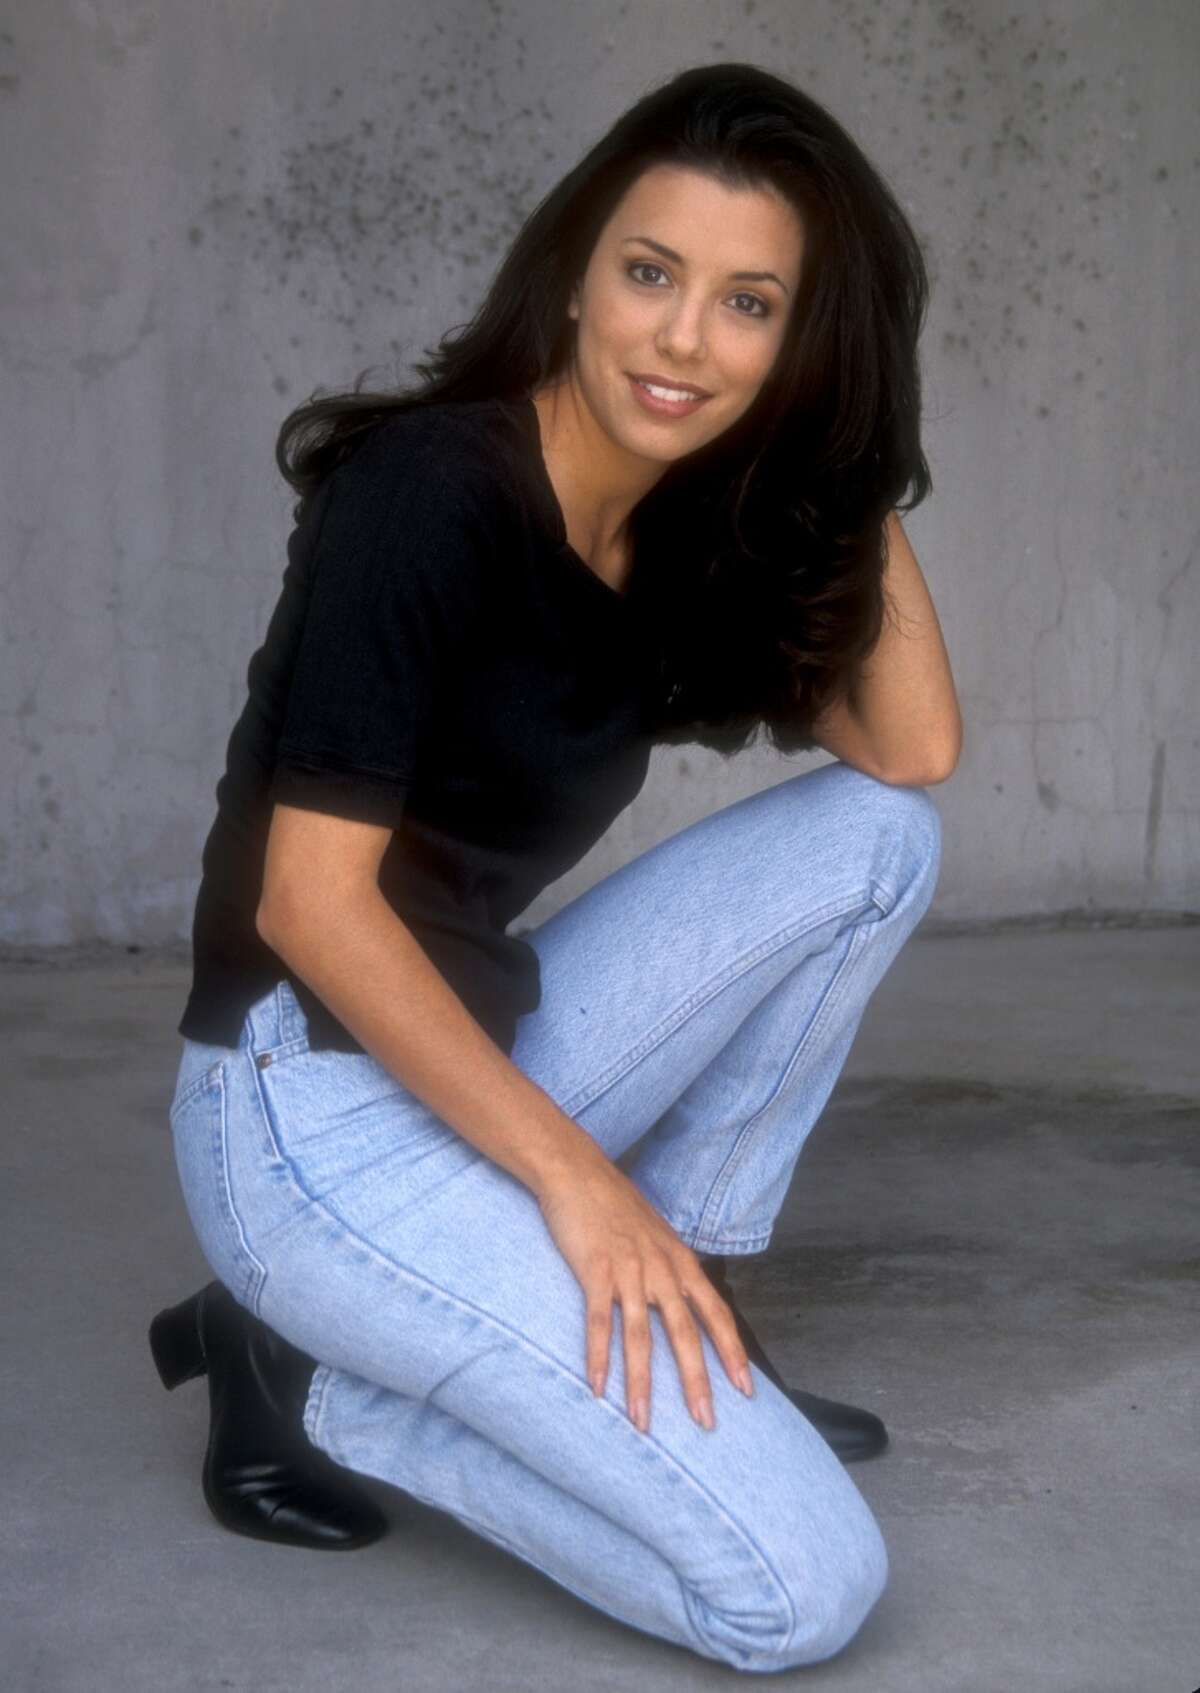 Here's Eva Longoria in 1998, looking very similar to the Eva Longoria of 2013. Keep clicking for a look at her fashion evolution.